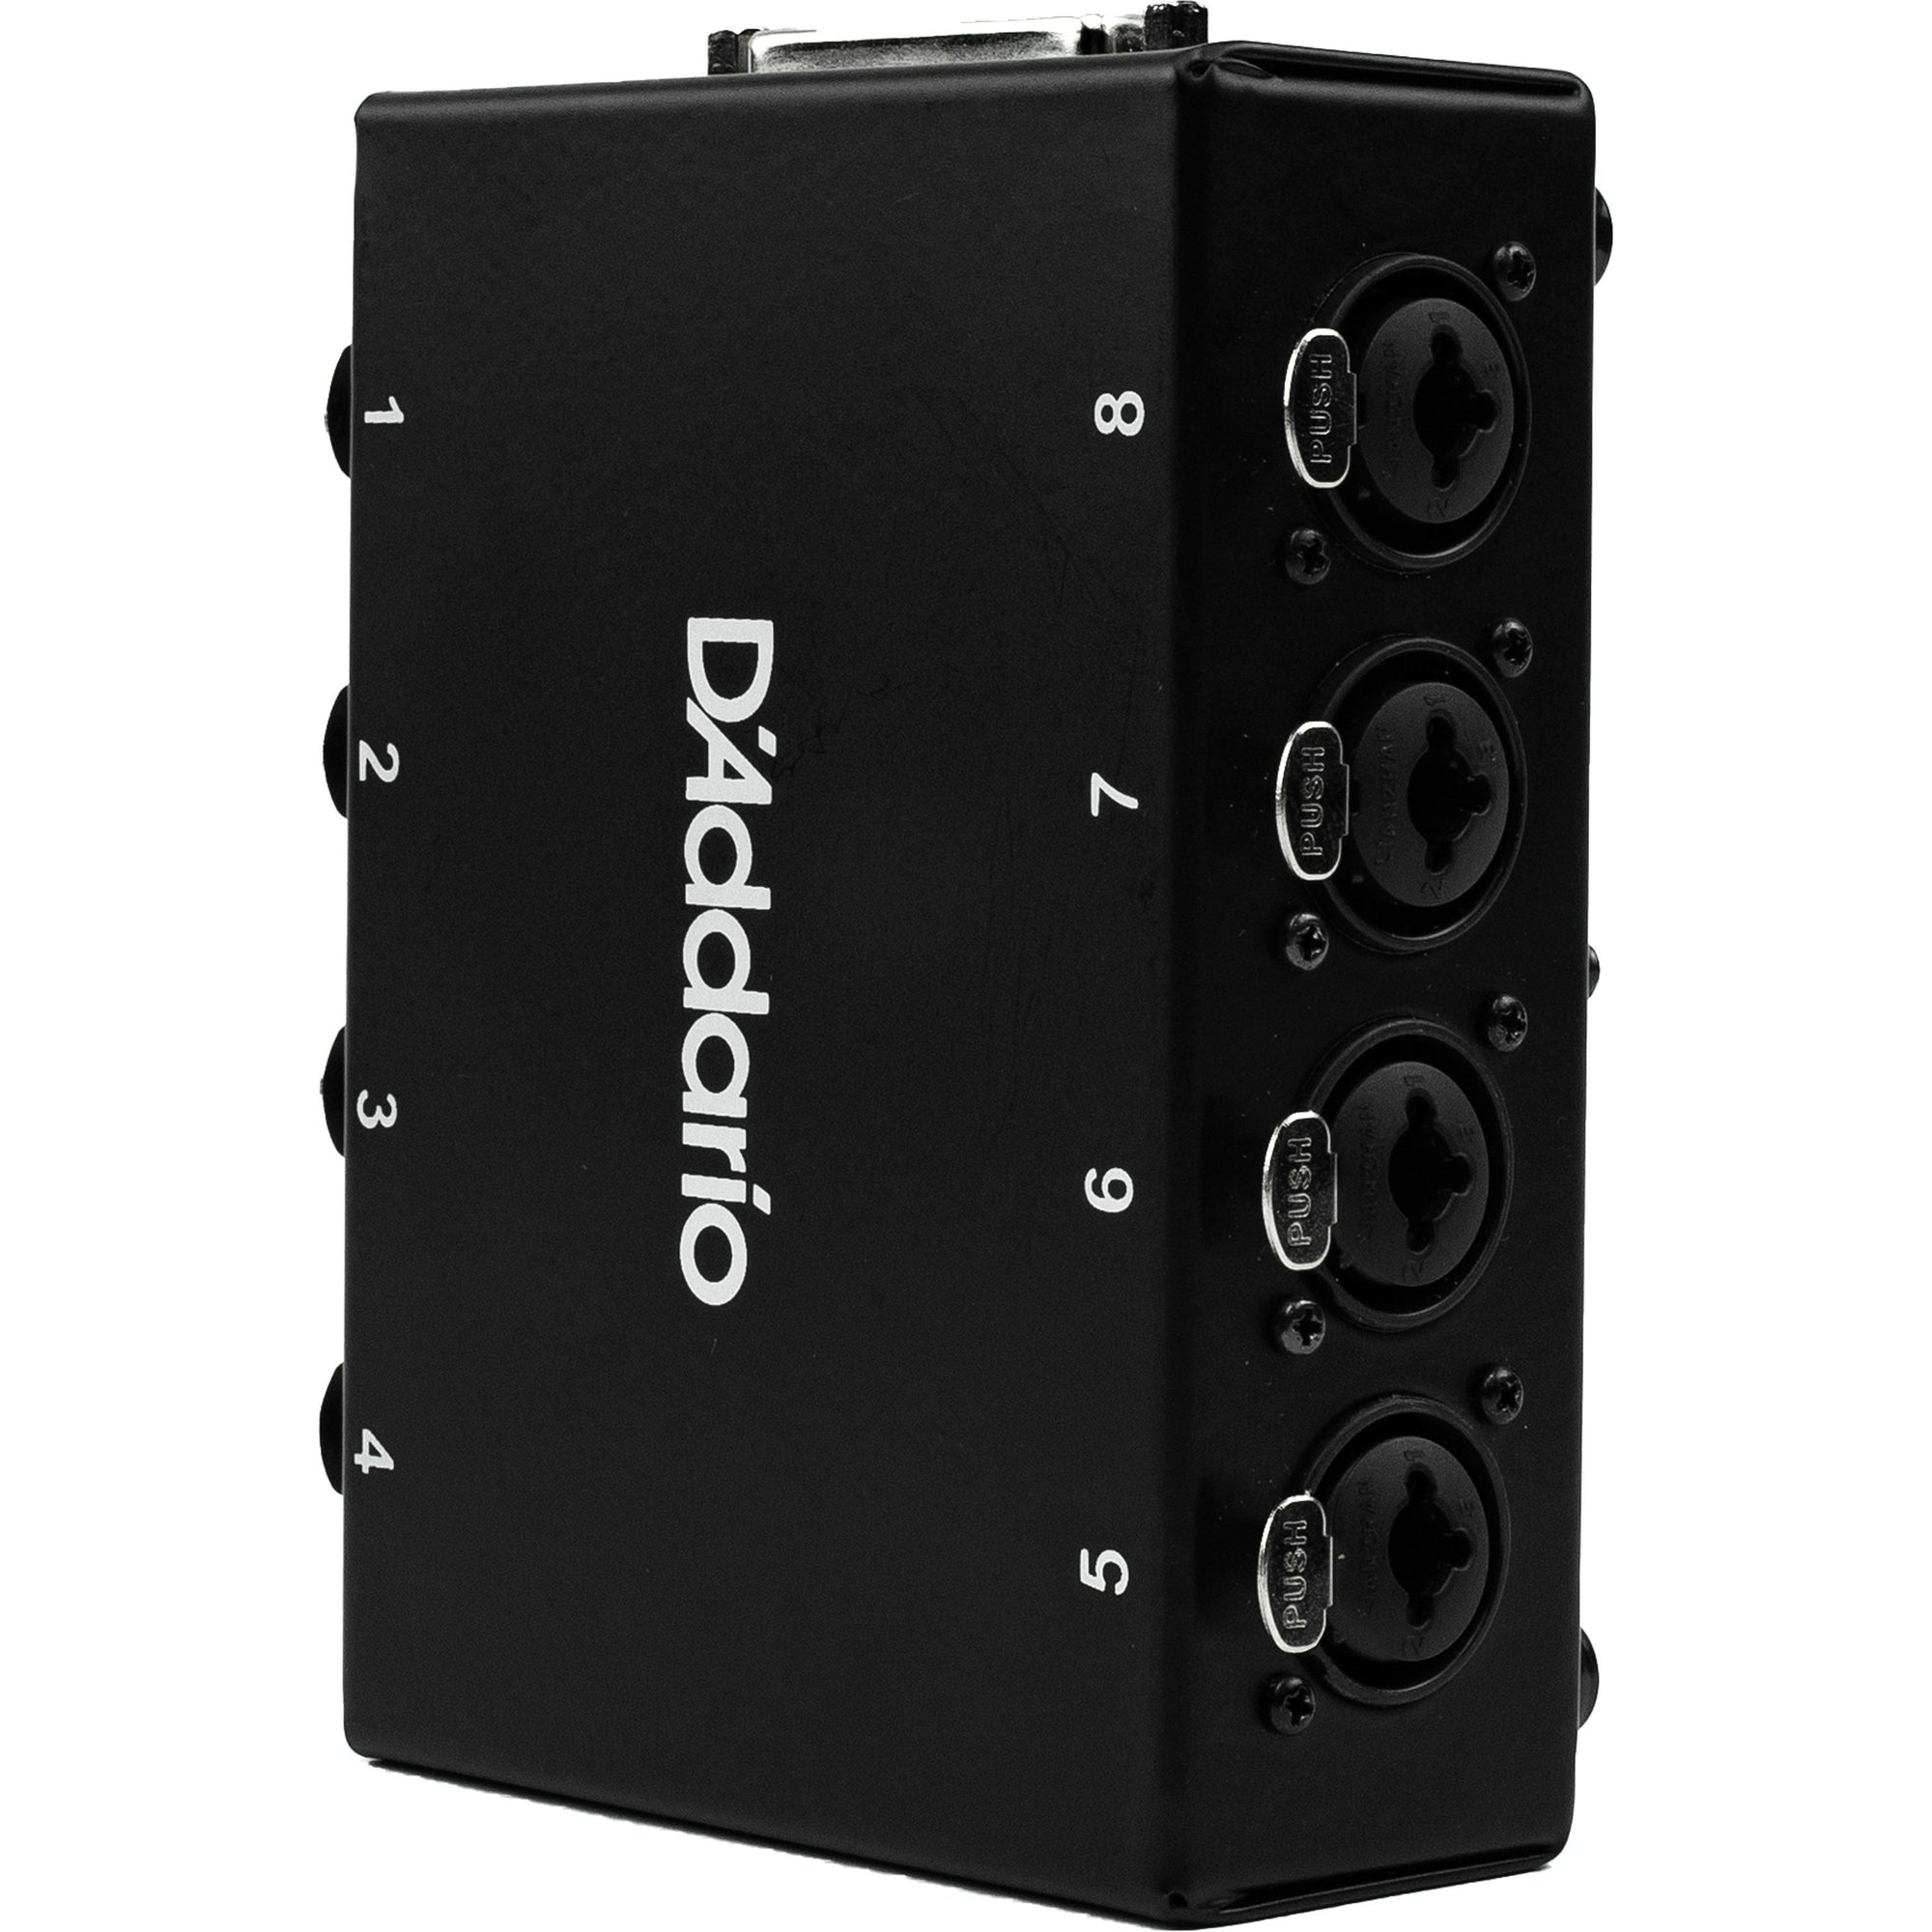 D'Addario Modular Snake System 8-Channel Stage Box